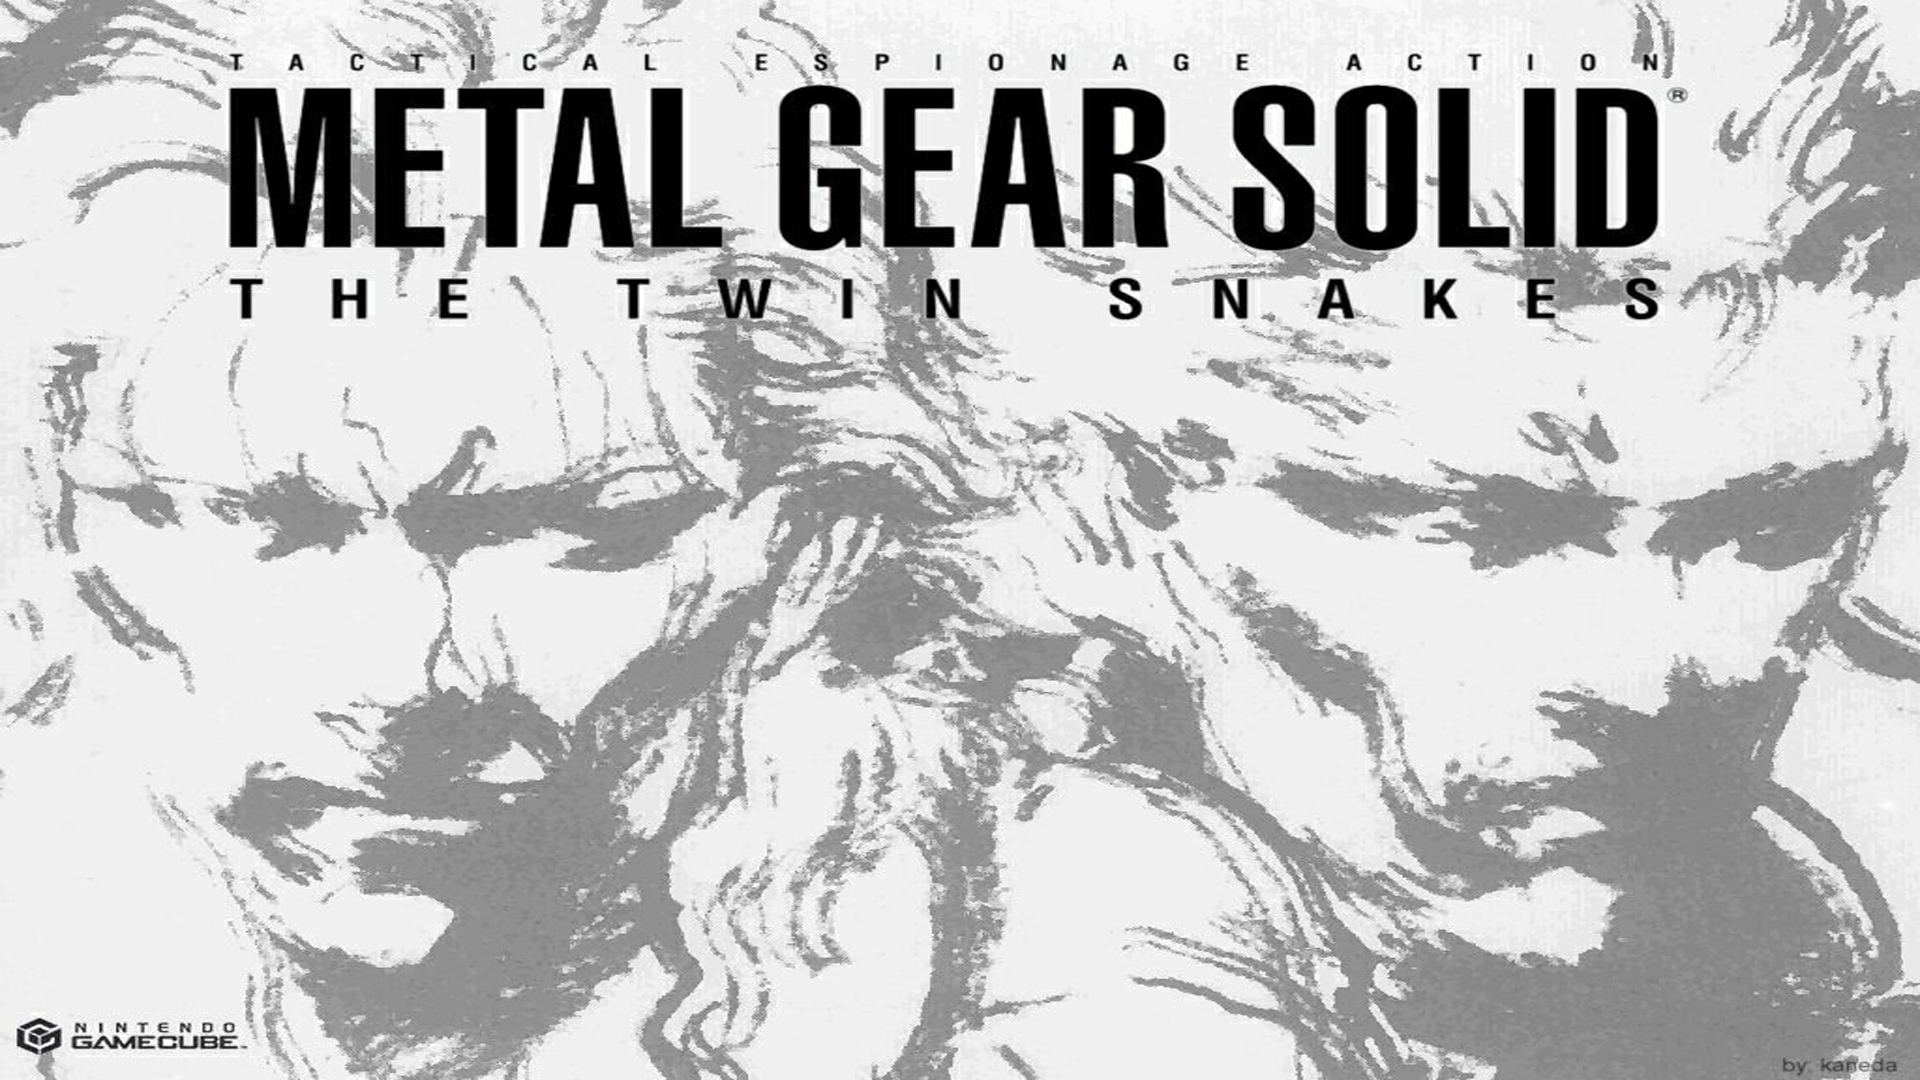 Metal Gear Solid The Twin Snakes Image Id 19321 Image Abyss